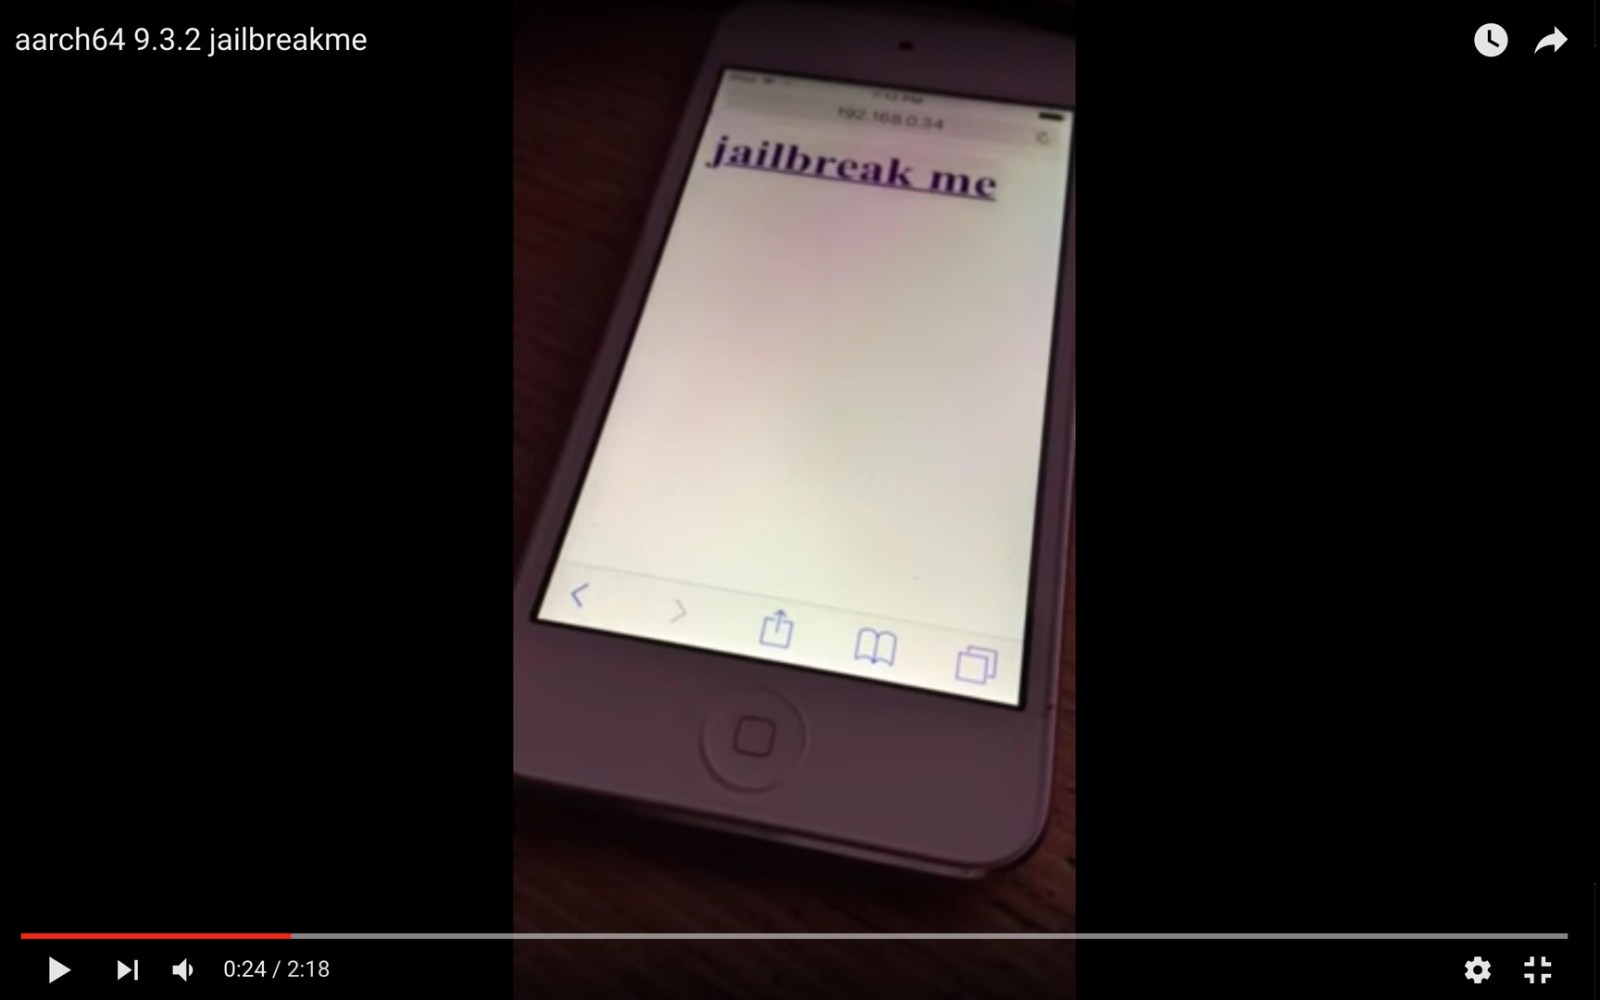 iOS hacker shows off iOS 9.3.2 JailbreakMe-inspired jailbreak, but a release is unlikely